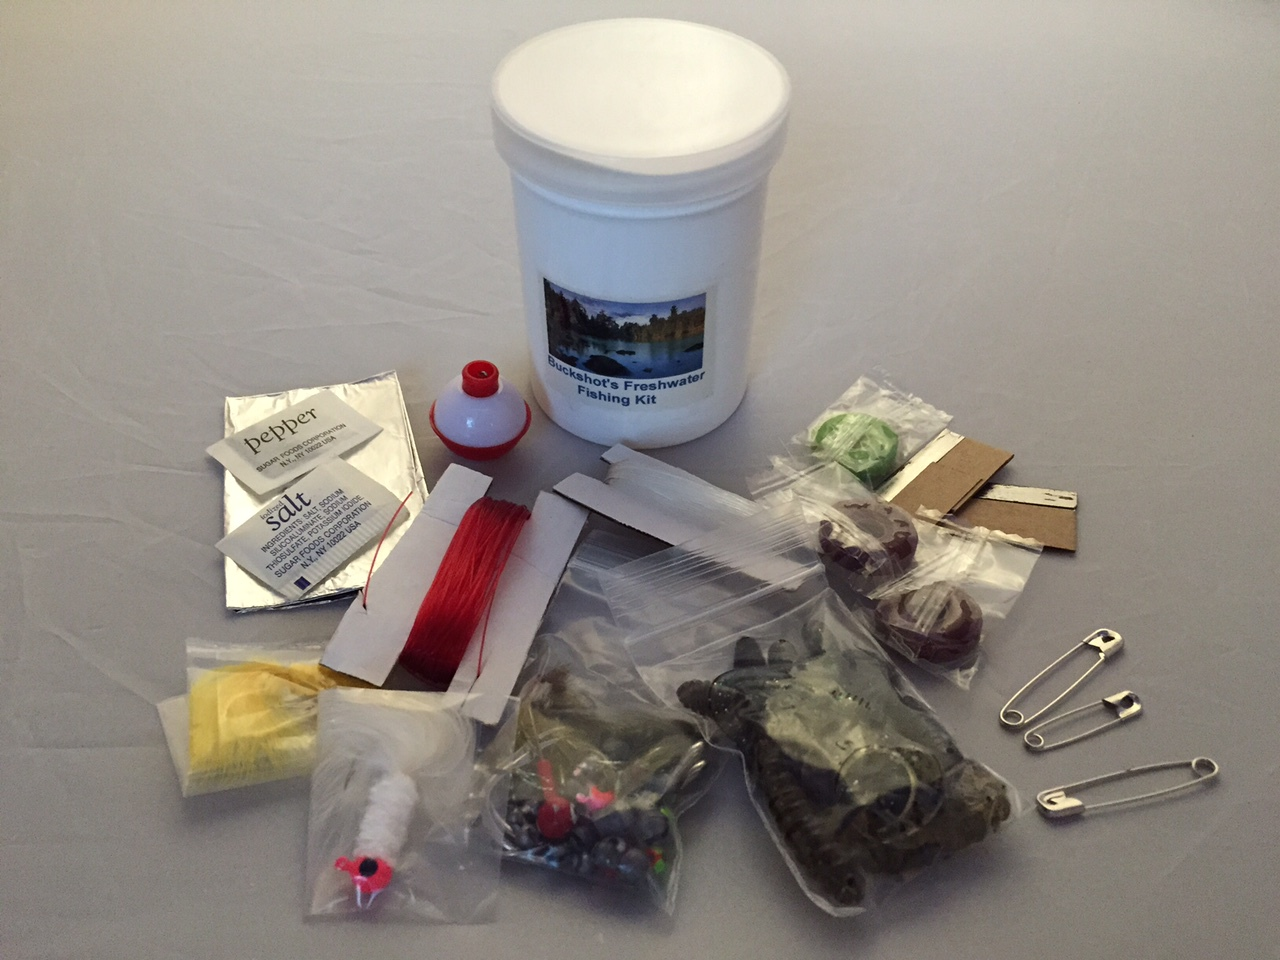 Buckshot's Emergency Freshwater Fishing Kit